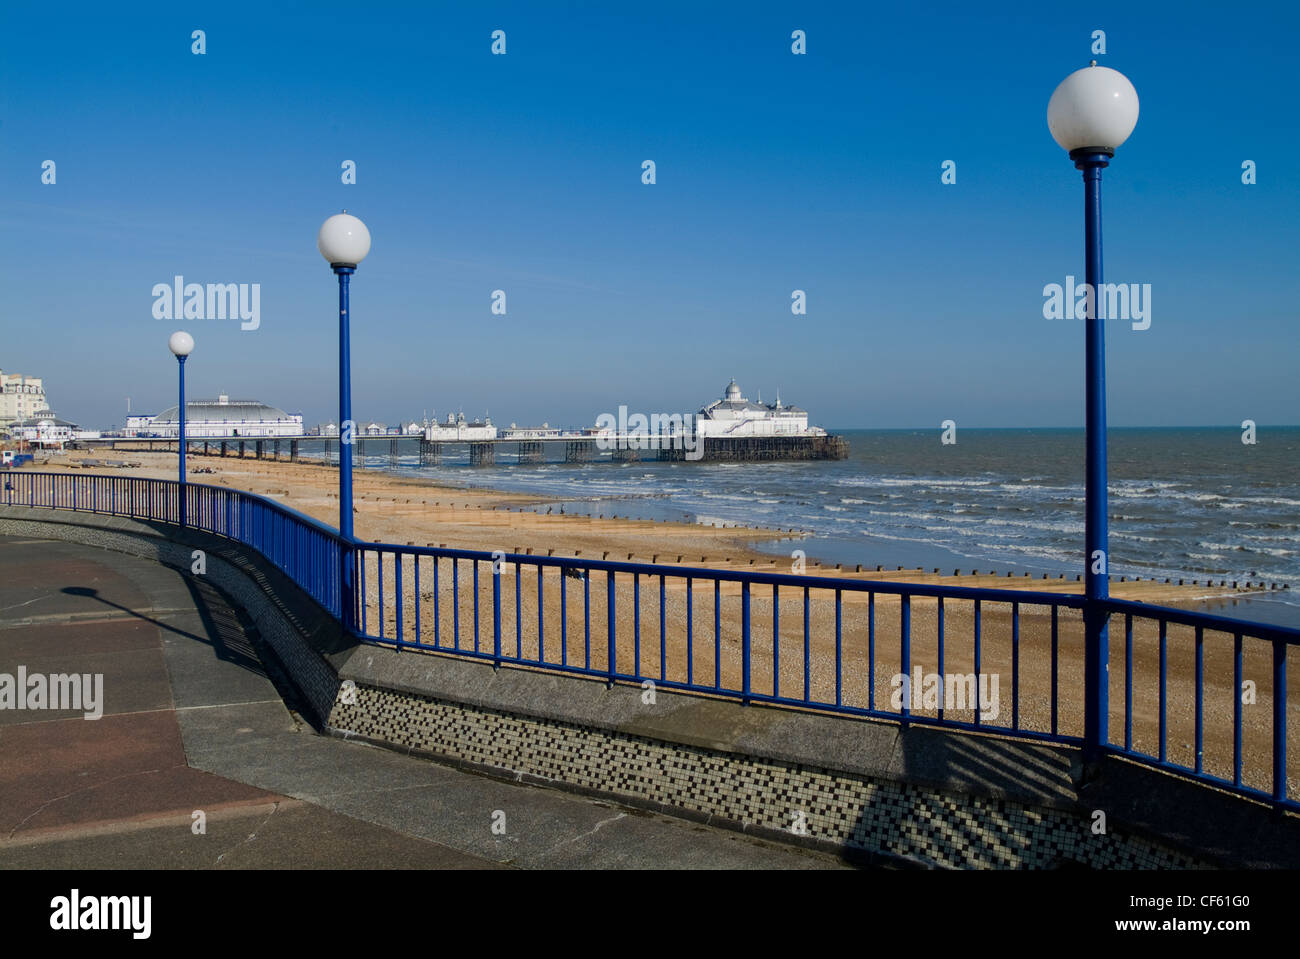 The view from the bandstand looking east to the pier at Eastbourne. Stock Photo